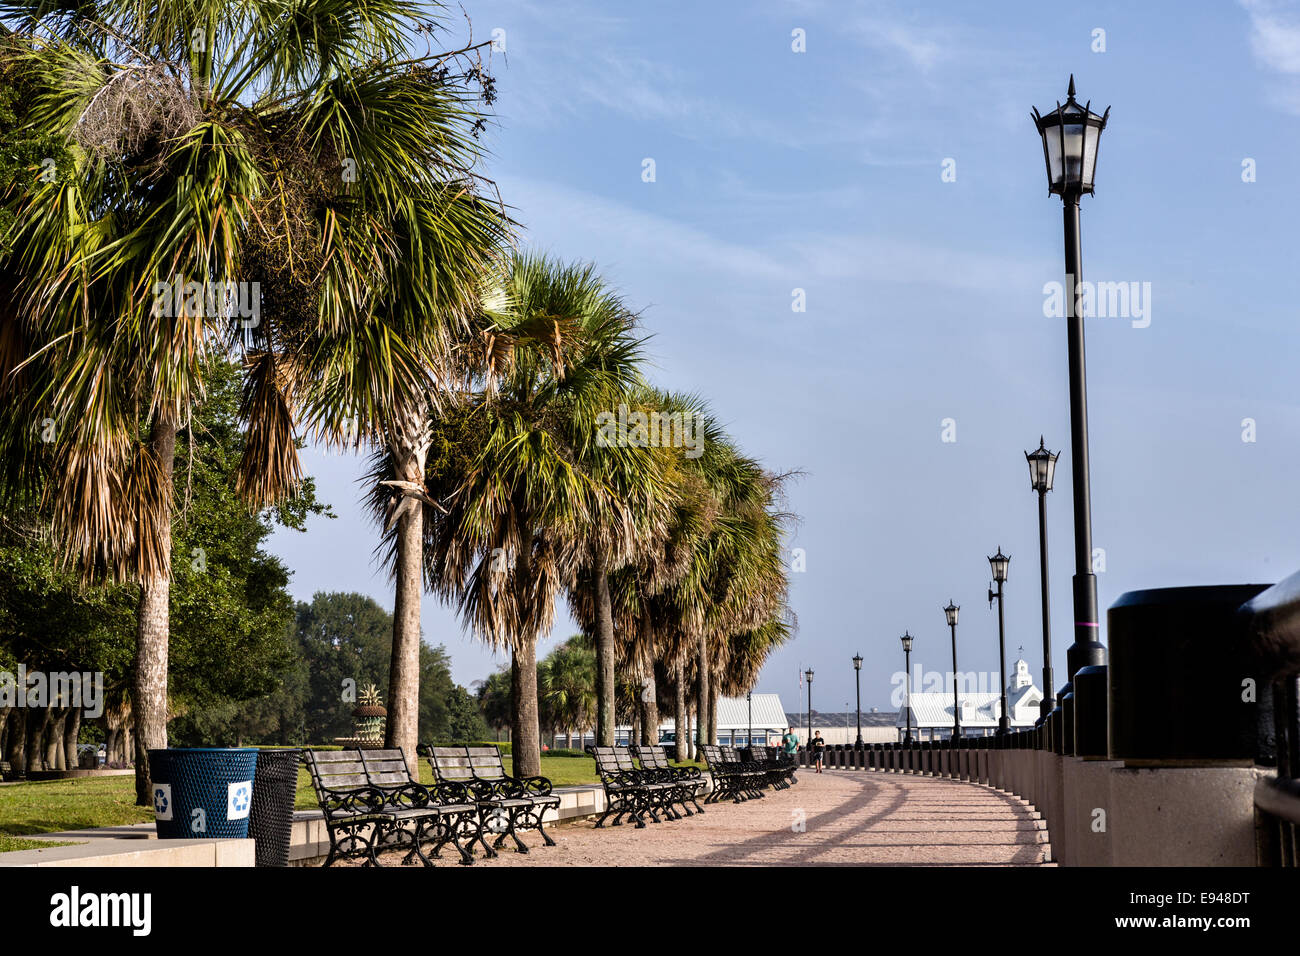 Benches along Waterfront Park on a foggy morning in historic Charleston, SC. - Stock Image